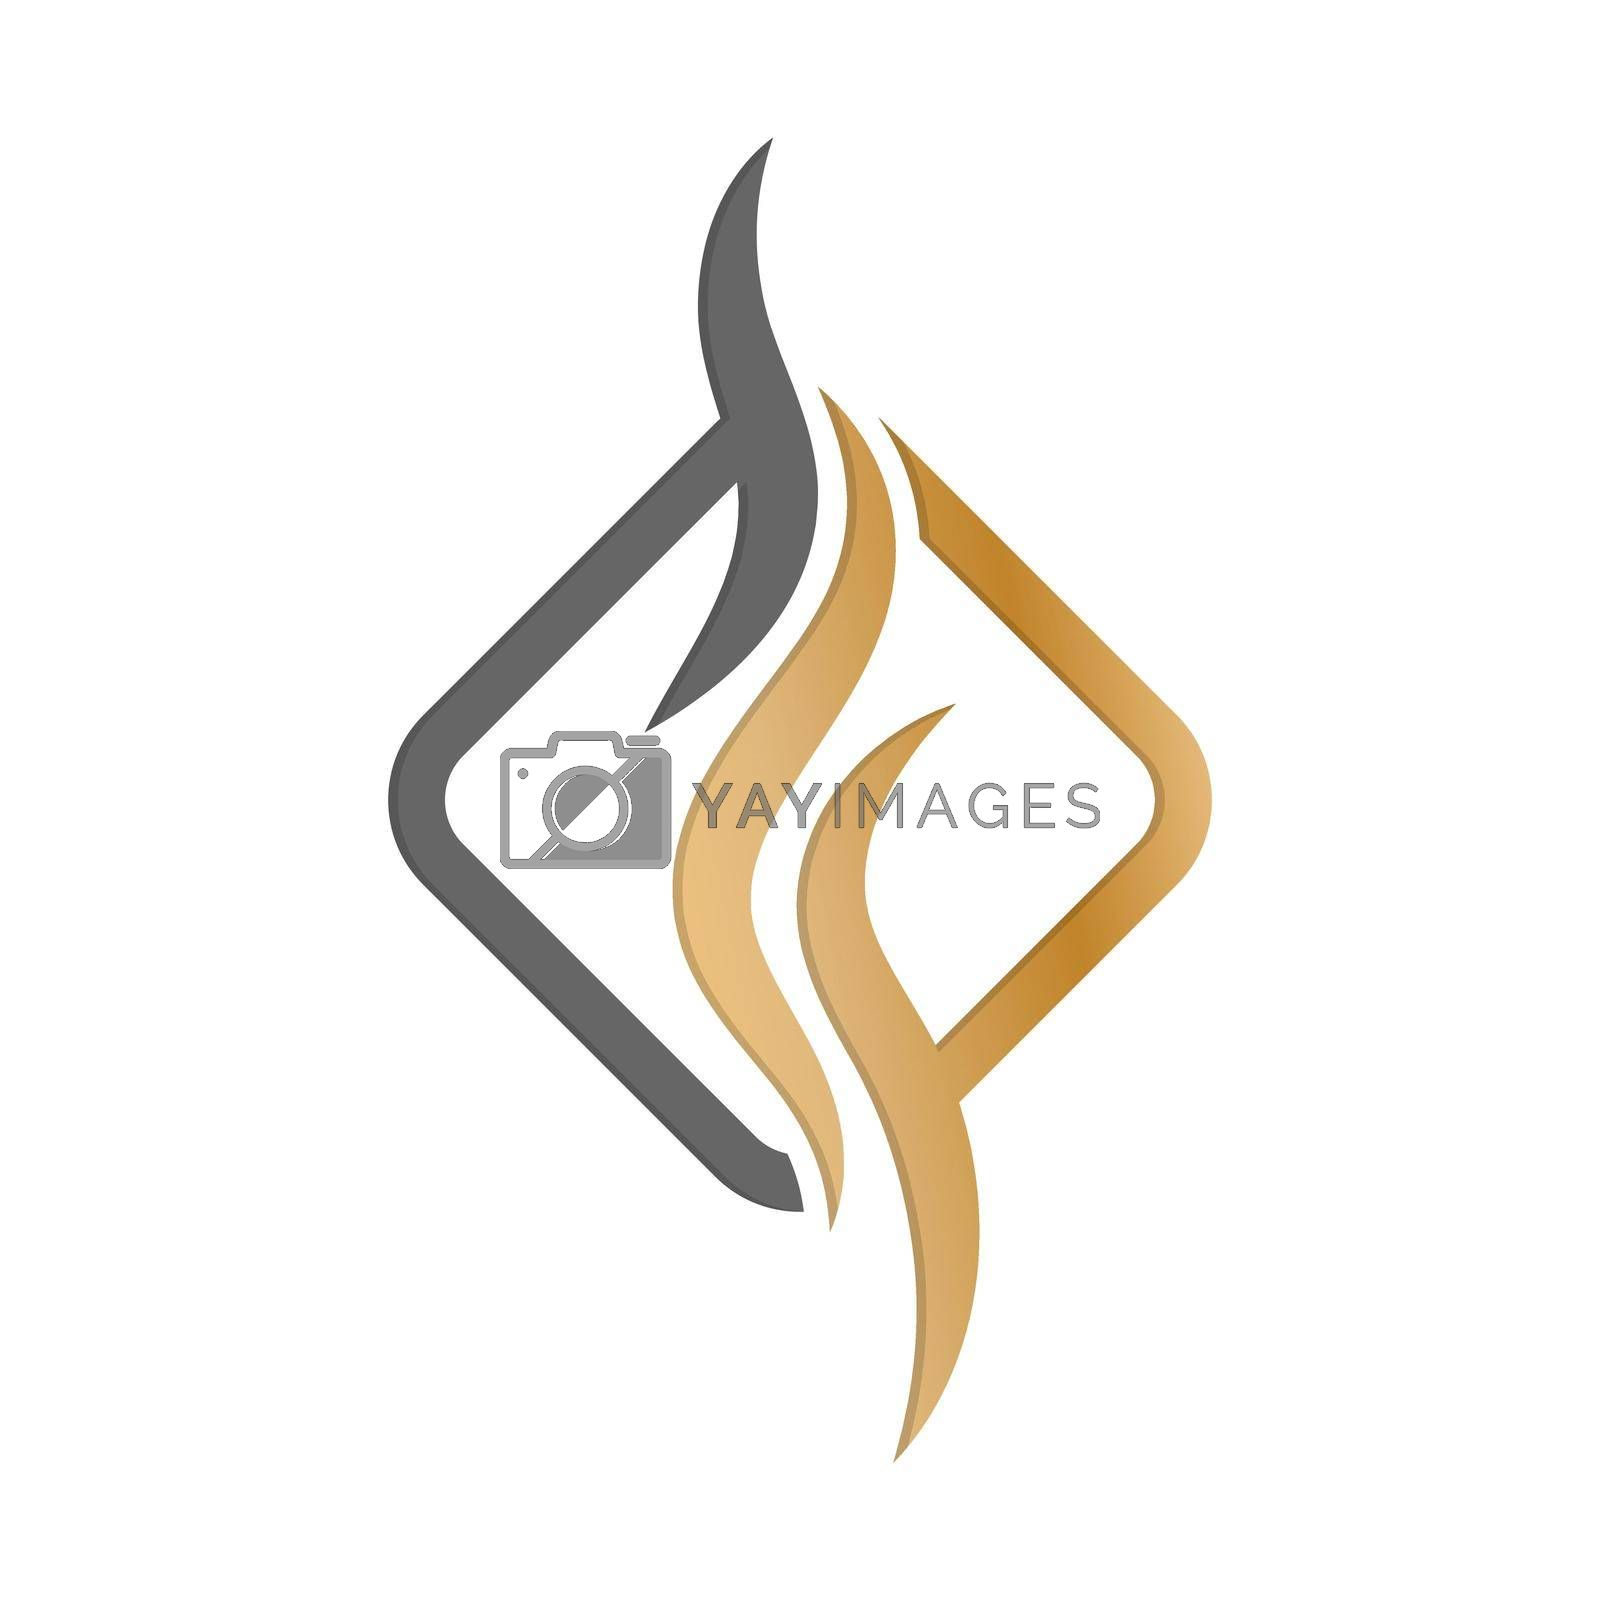 template for a logo, emblem or sticker. icon for the site and applications. Flat style